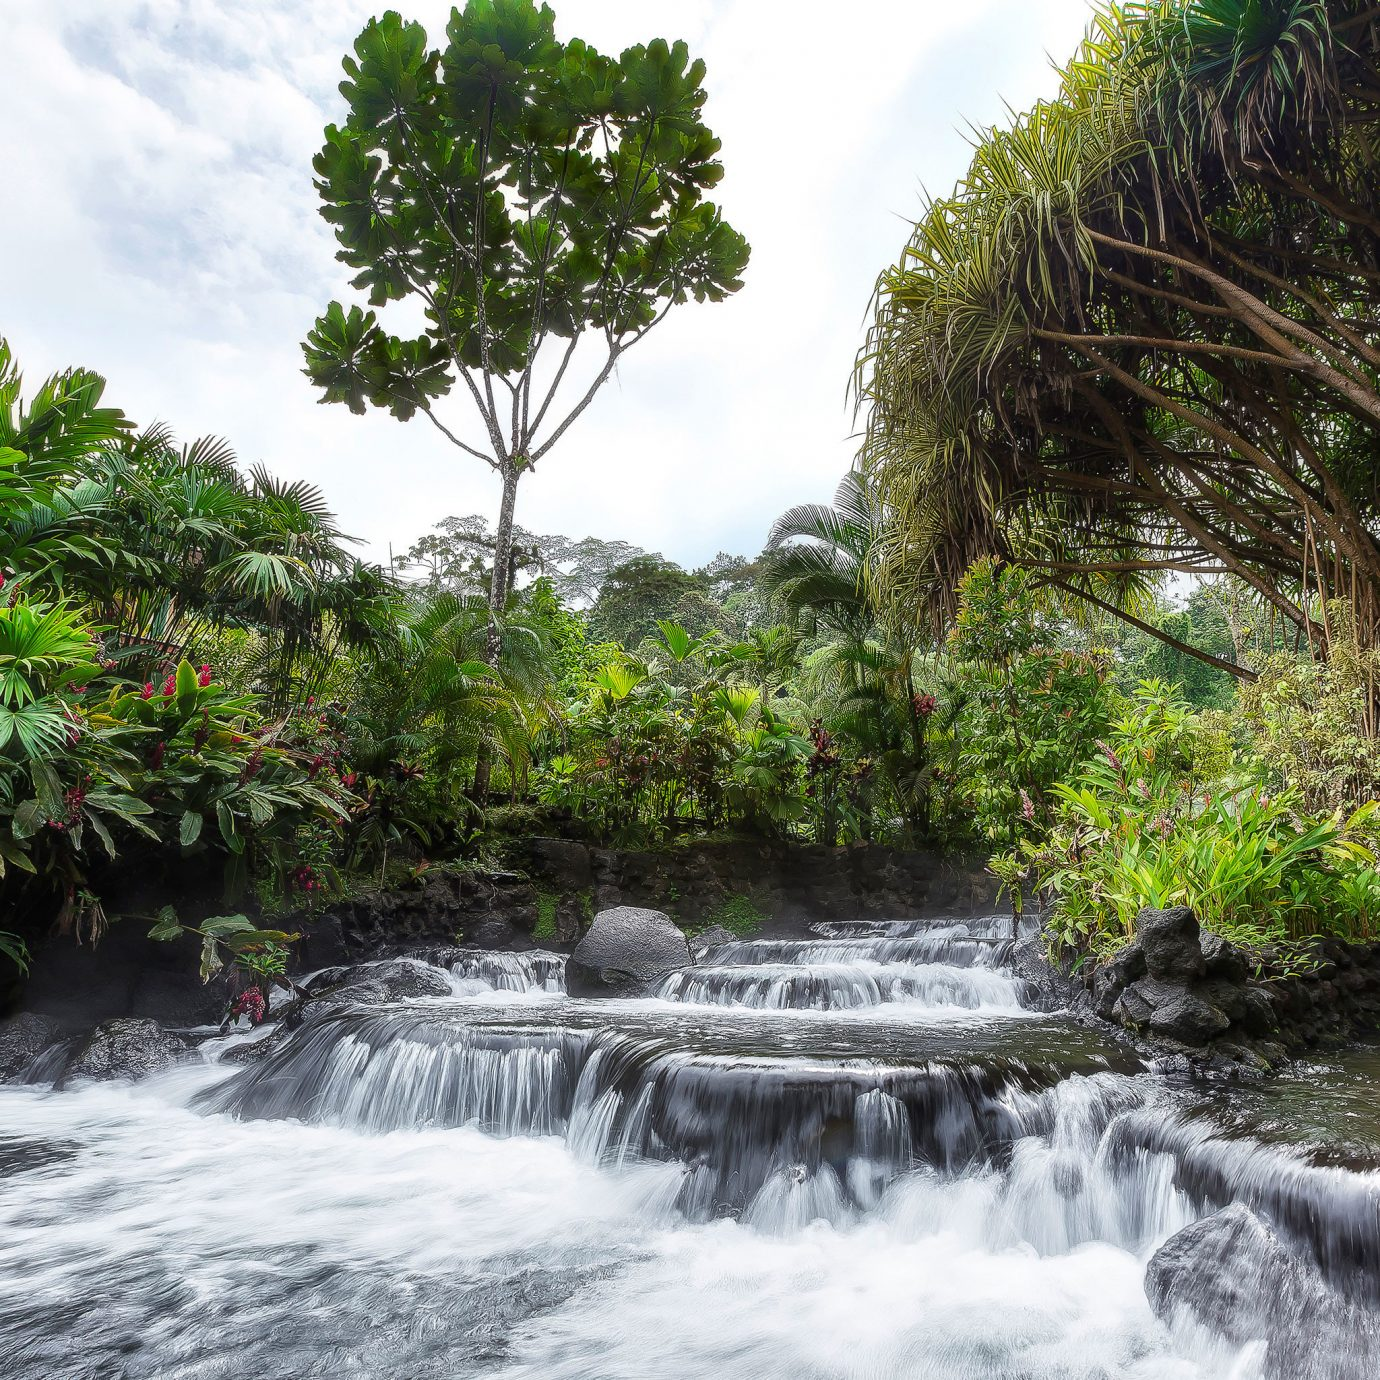 Outdoor Activities River Waterfall tree water Nature habitat vegetation watercourse botany rainforest Jungle Forest water feature stream flower tropics rapid